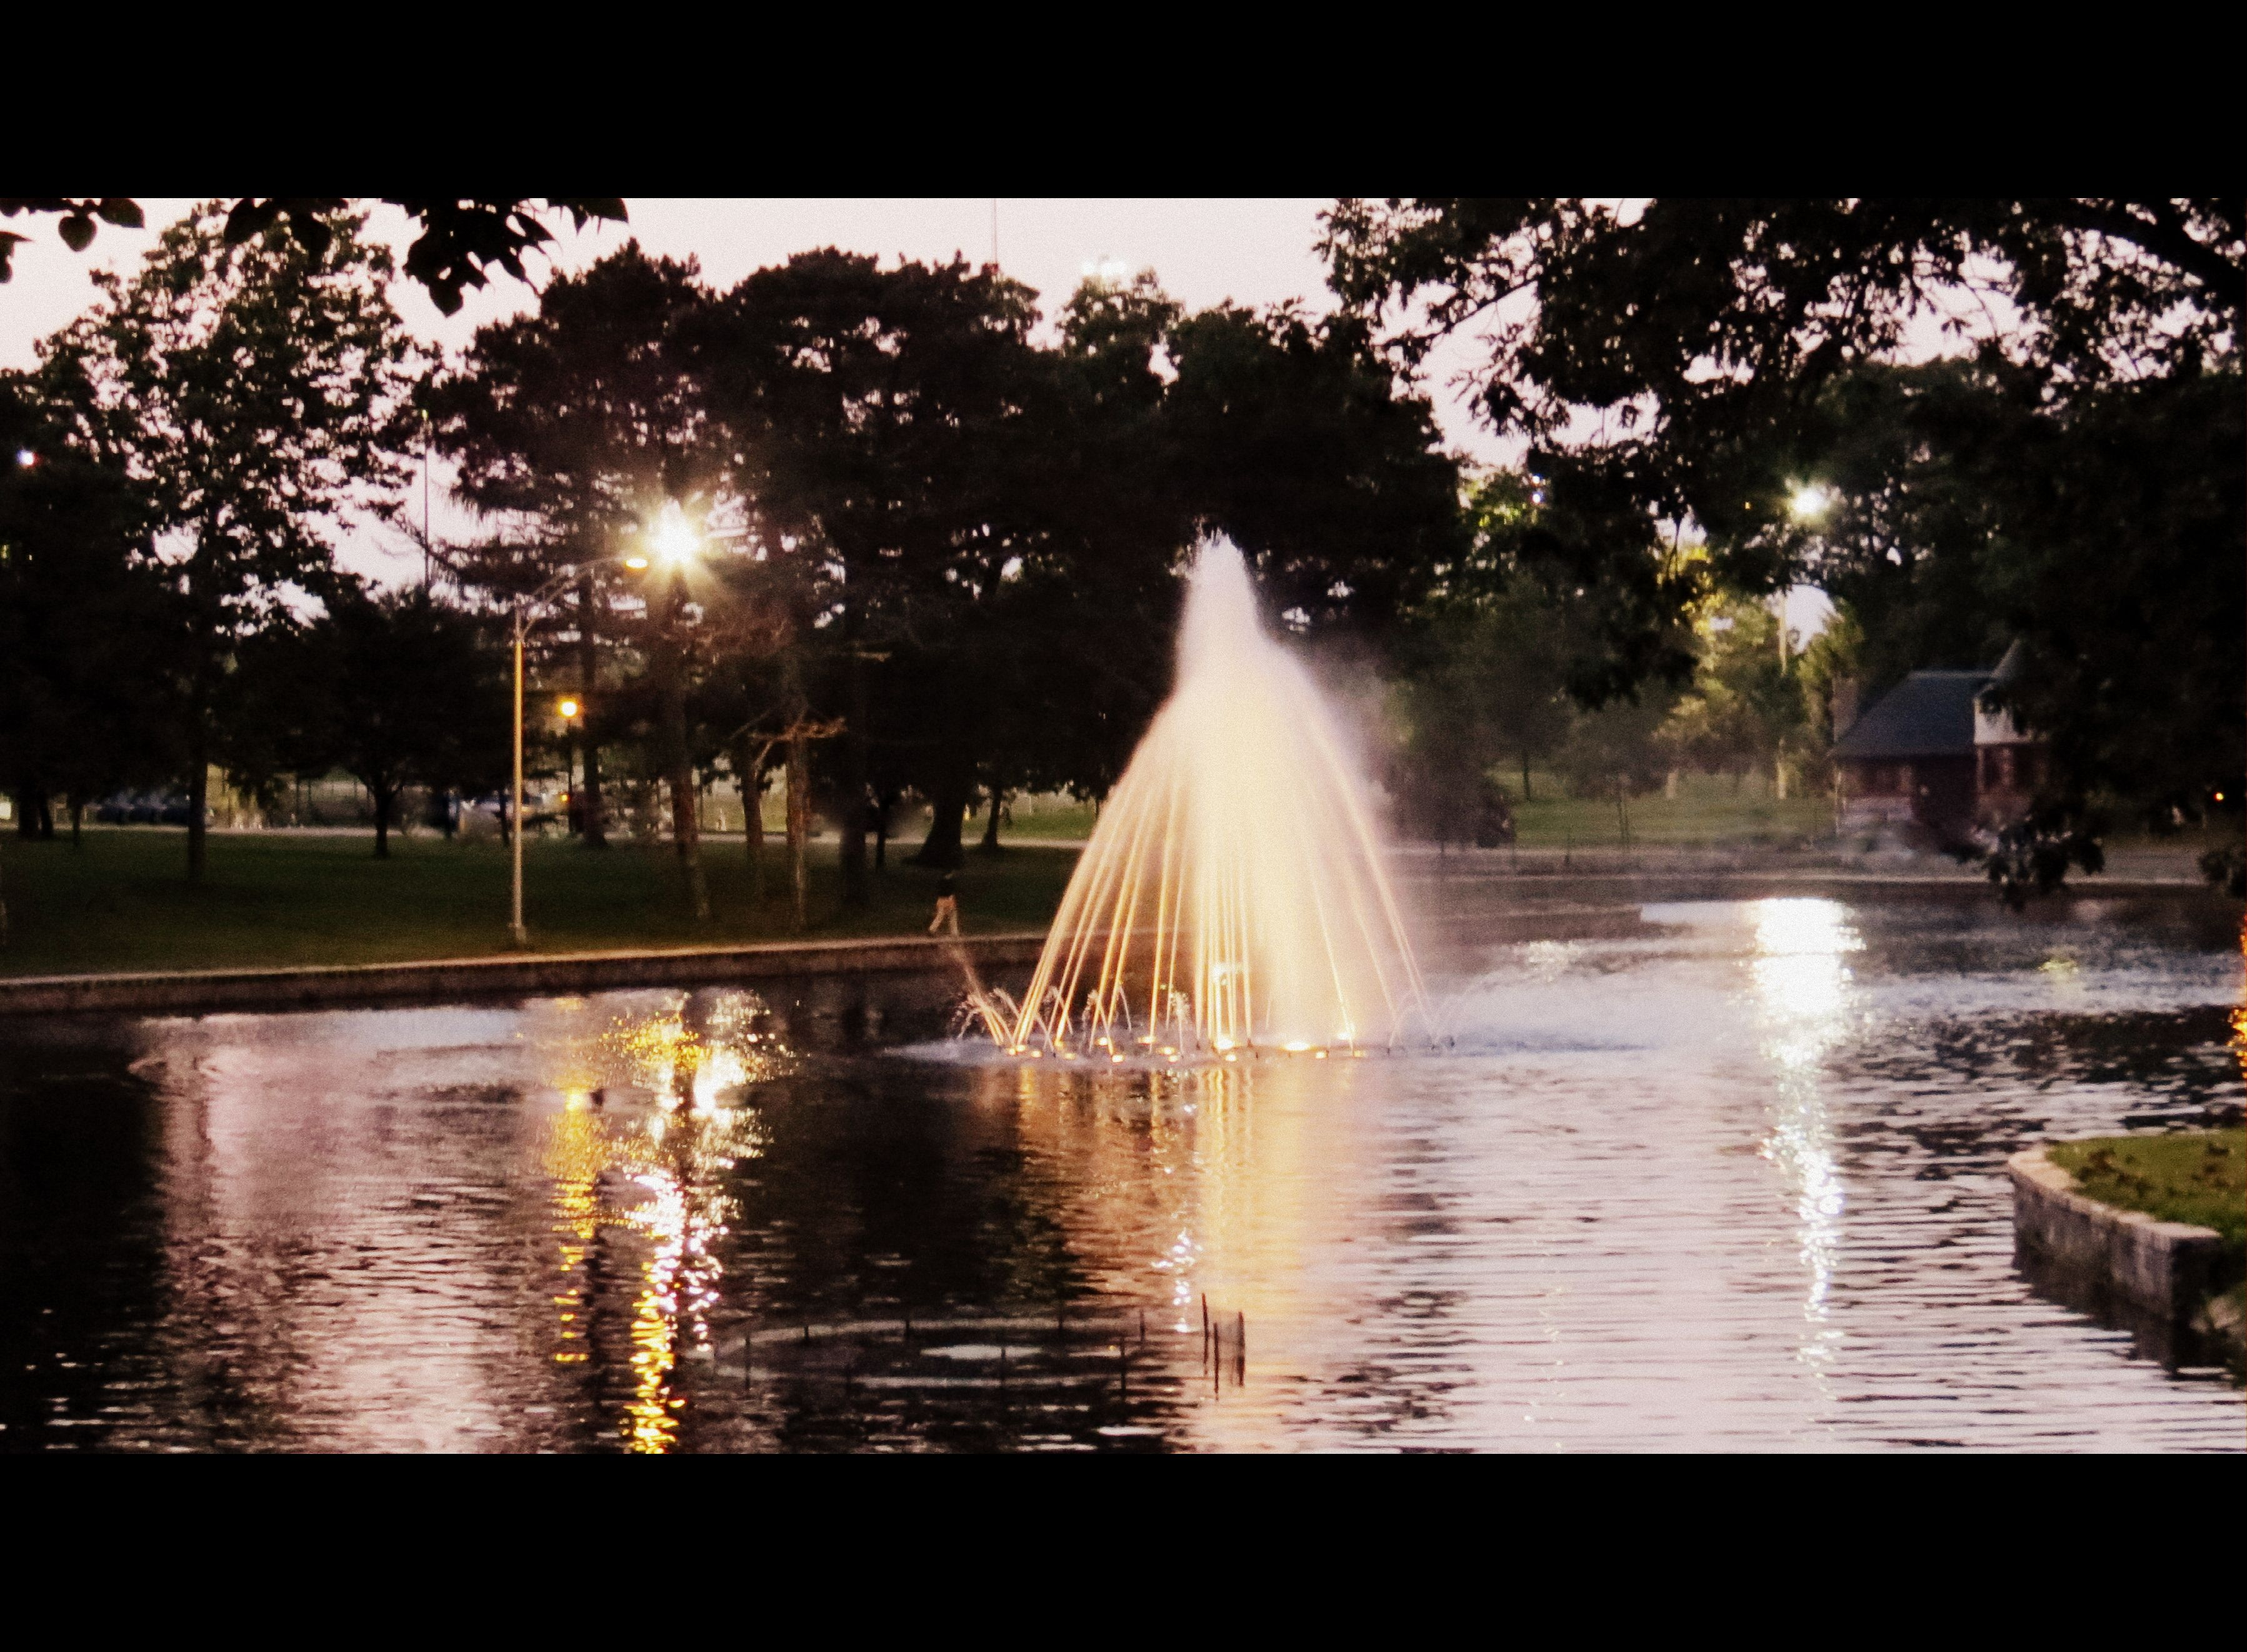 August 24th, 2014...Night falls in the Oaks